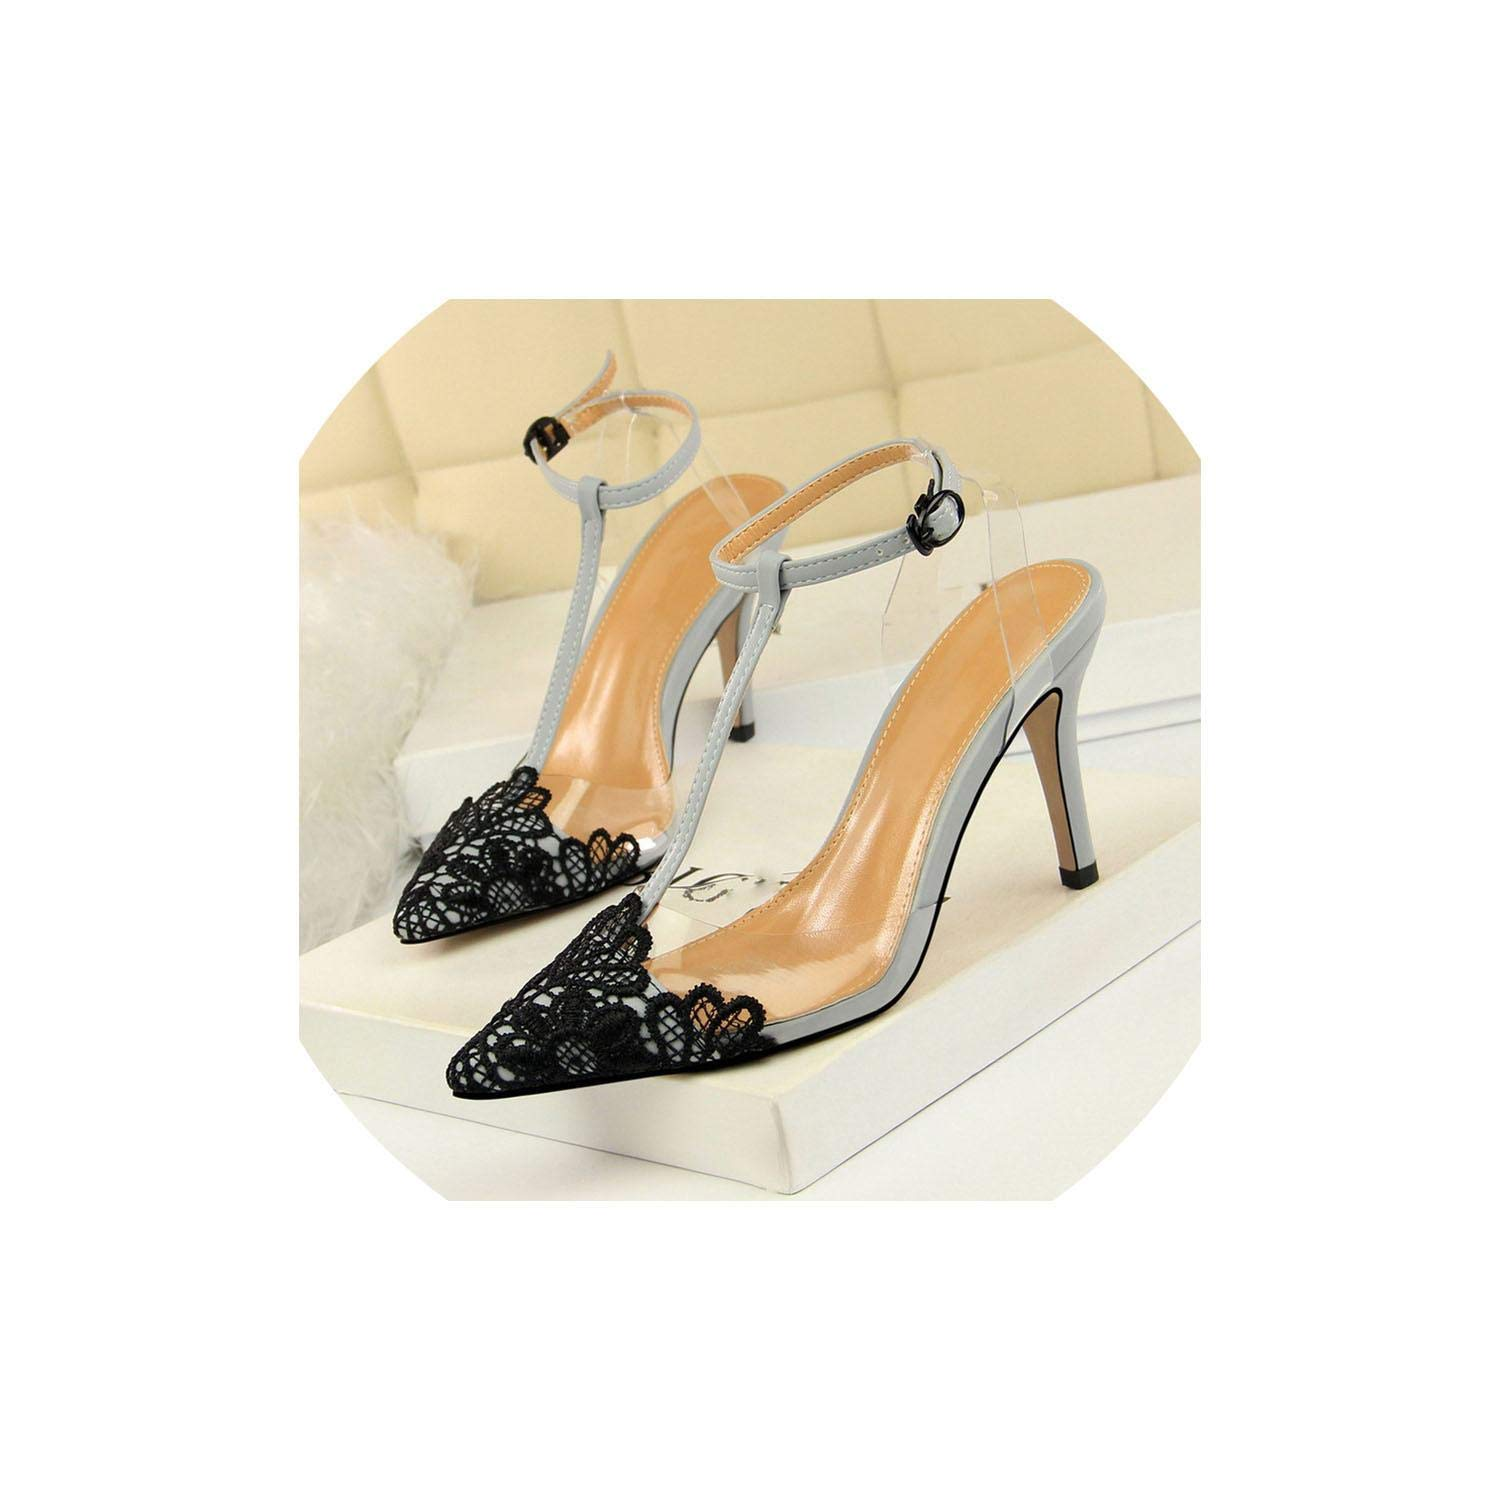 Boom-moon Transparent Lace Pumps Pointed Toe High Heeled Women Shoes Sandals